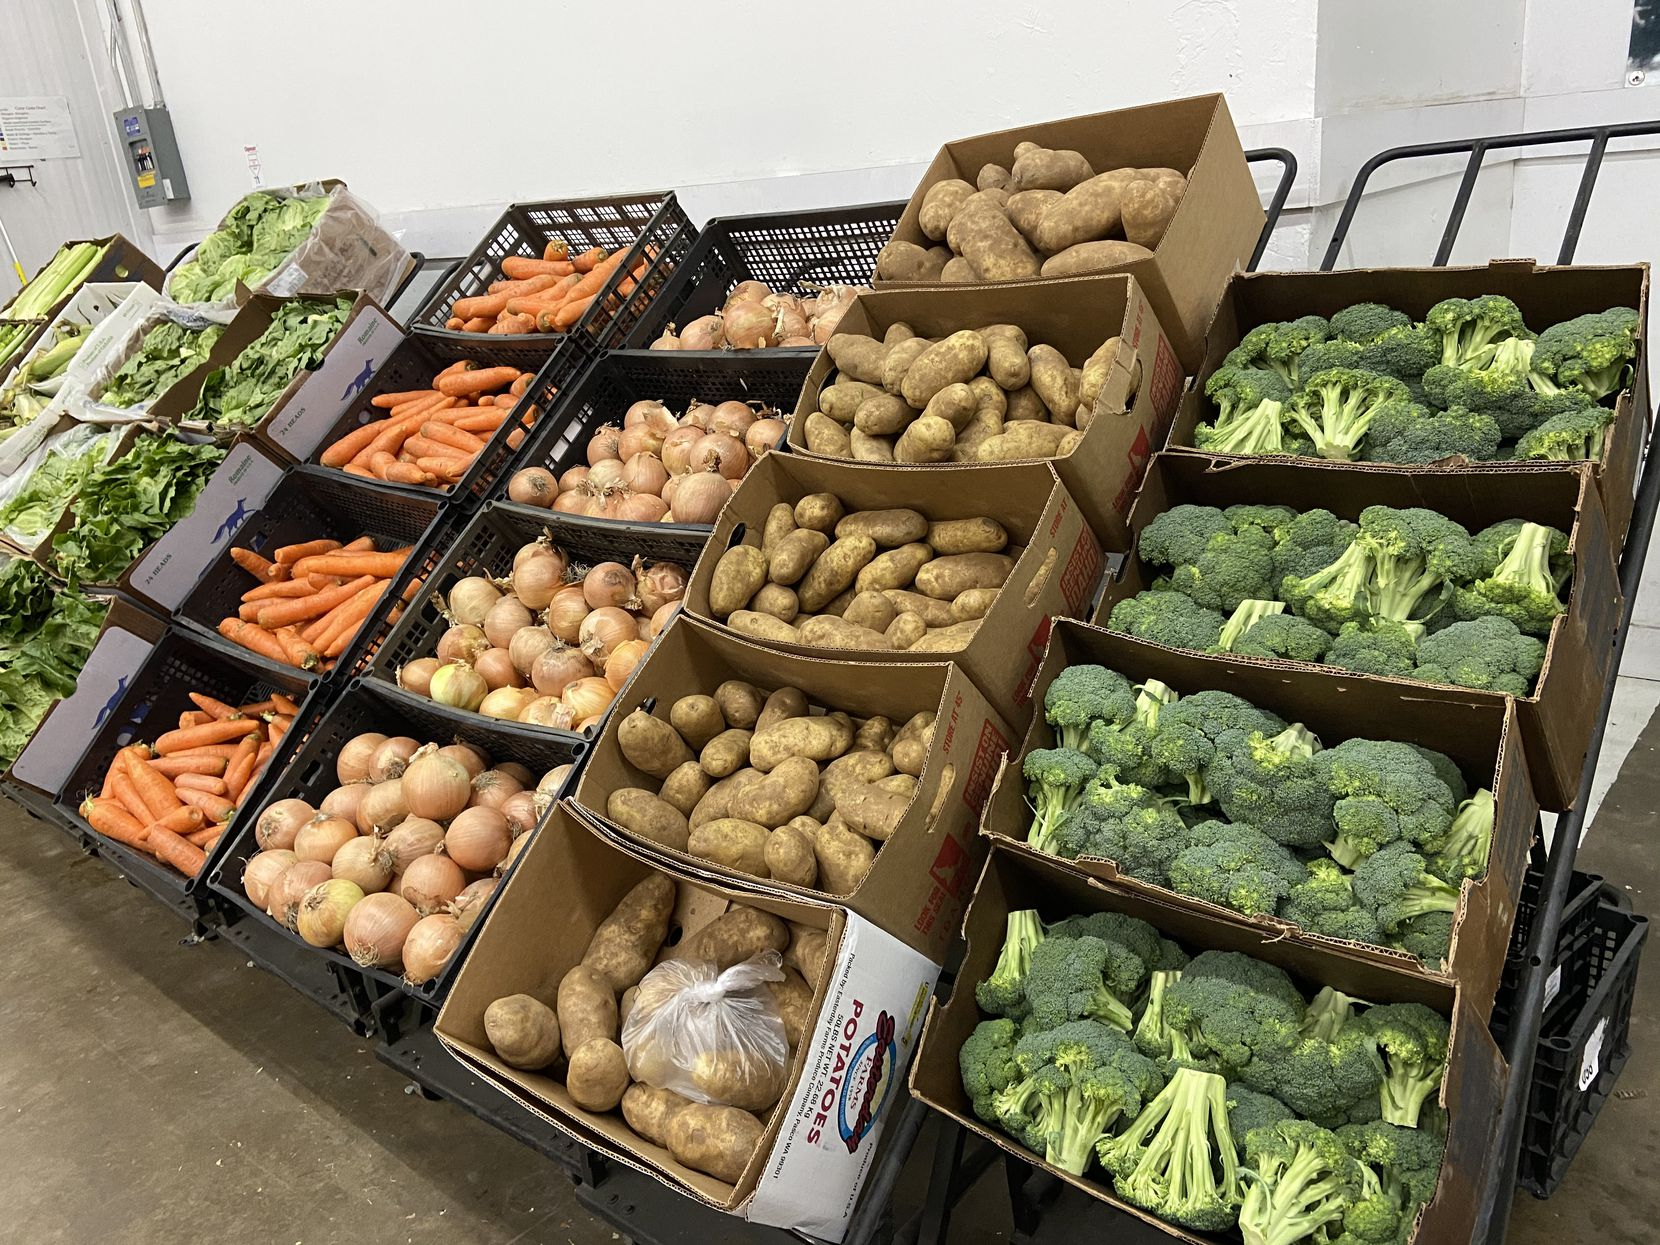 FreshPoint, the produce arm of the mega-wholesaler Sysco, is now selling to the public for the first time.